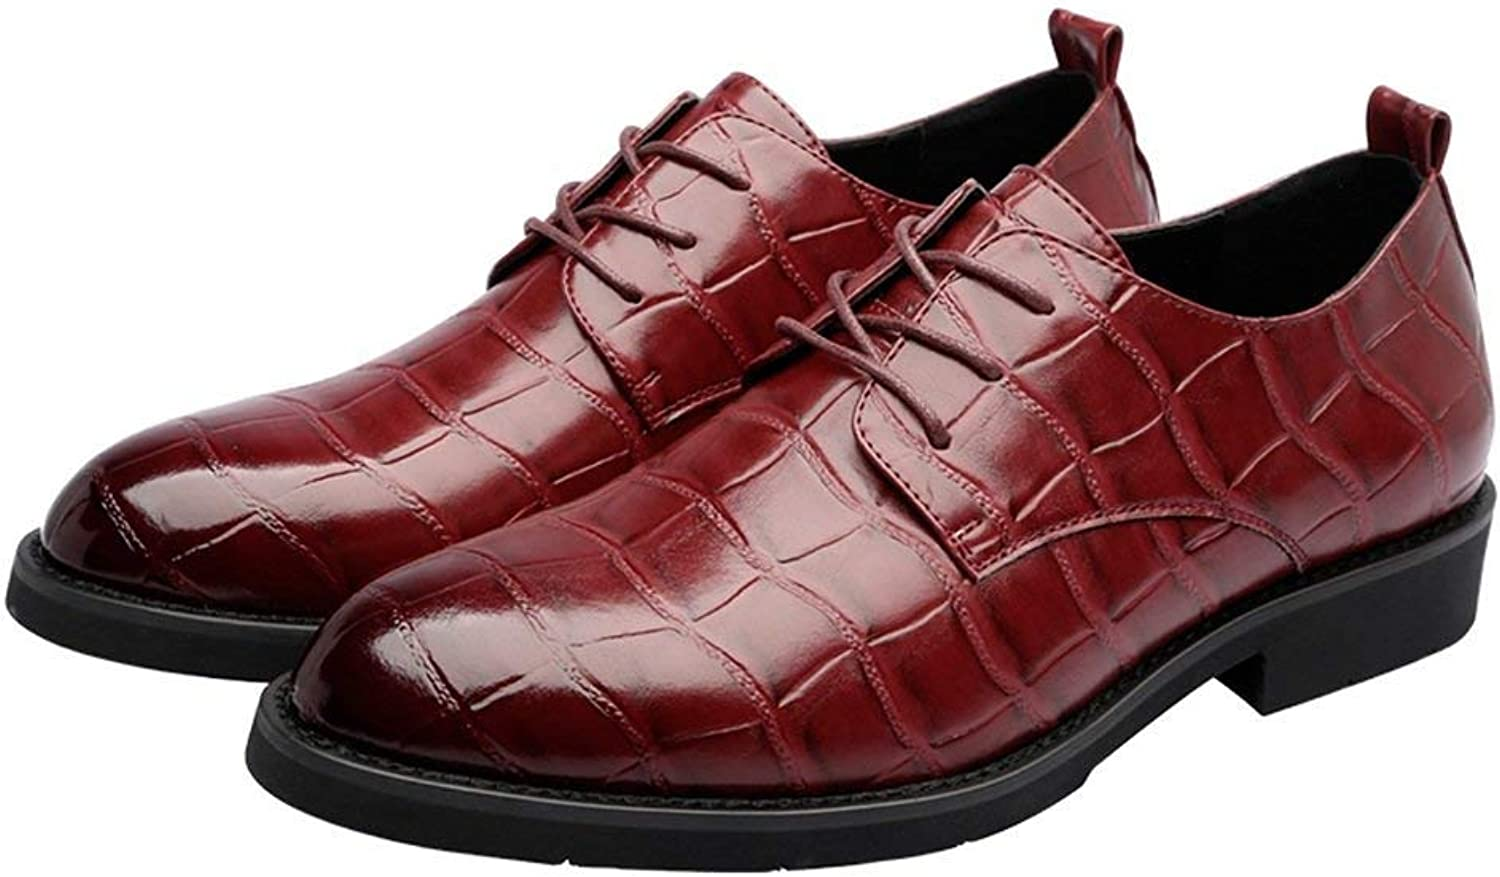 Hhgold 2018 Men PU Leather shoes Square Texture Upper Lace up Breathable Business Low Top Lined Oxfords (Loafers Optional) (color  Loafers, Size  37 EU) (color   Wine, Size   43 EU)